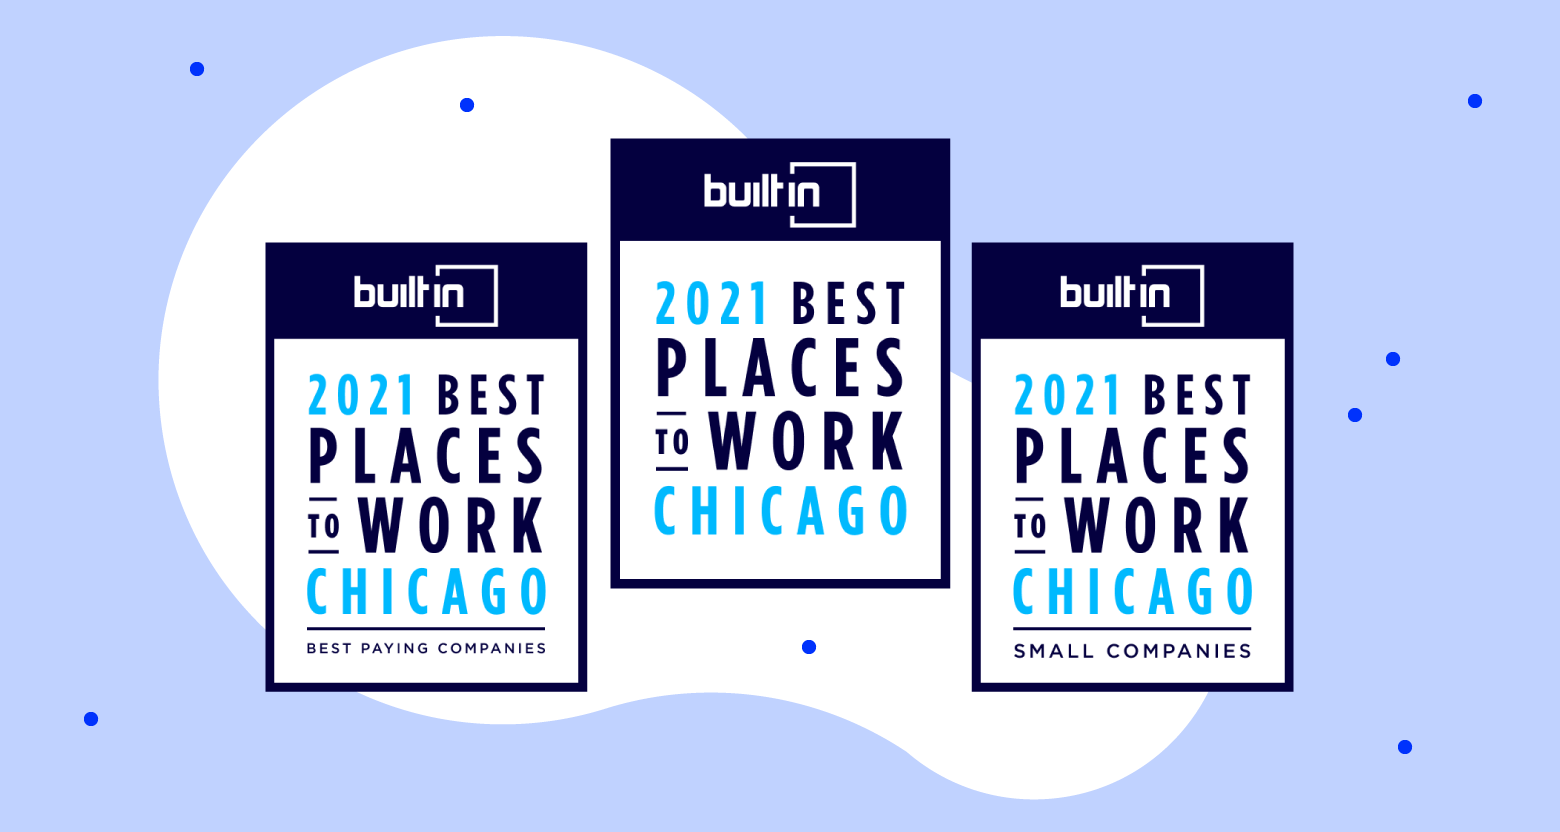 Built In Badges for Best Places to Work, Best Small Companies to Work for, Best Paying Companies